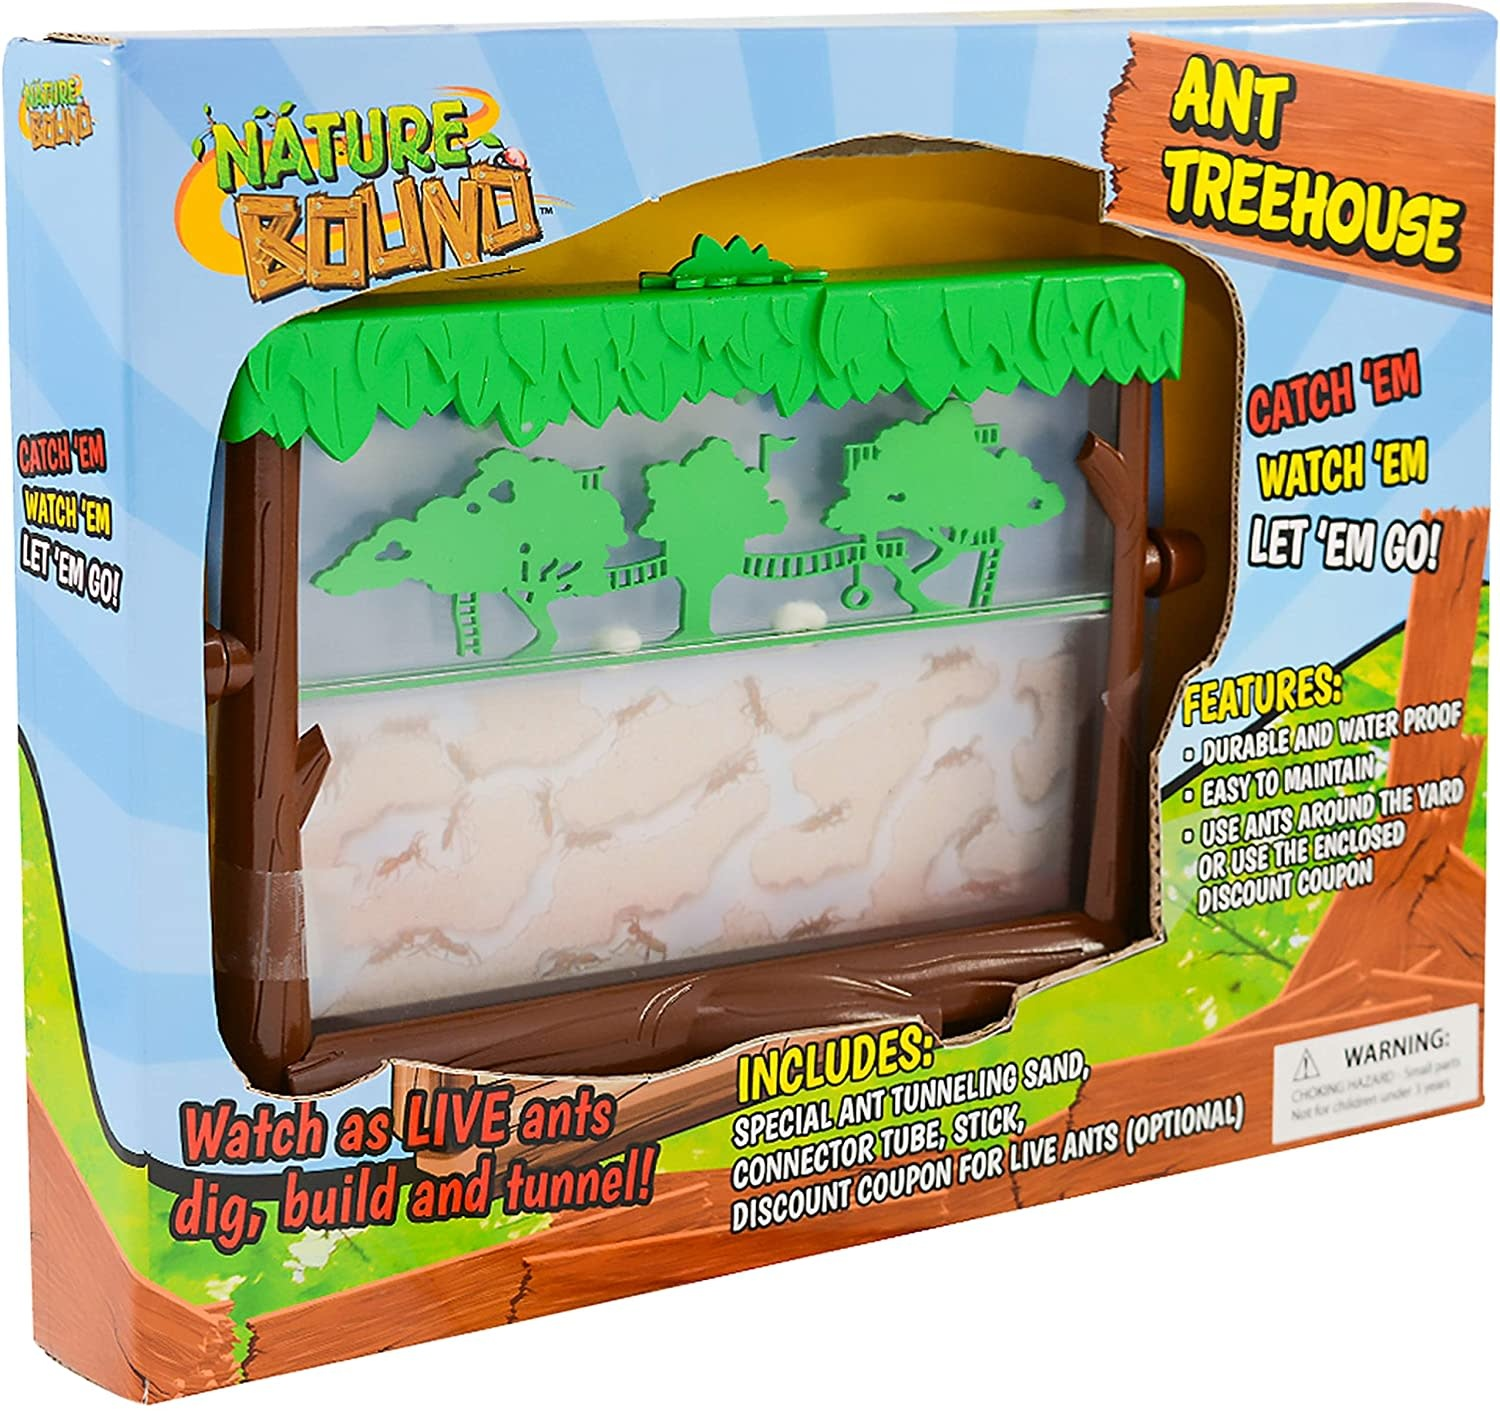 Ant Treehouse by Nature Bound